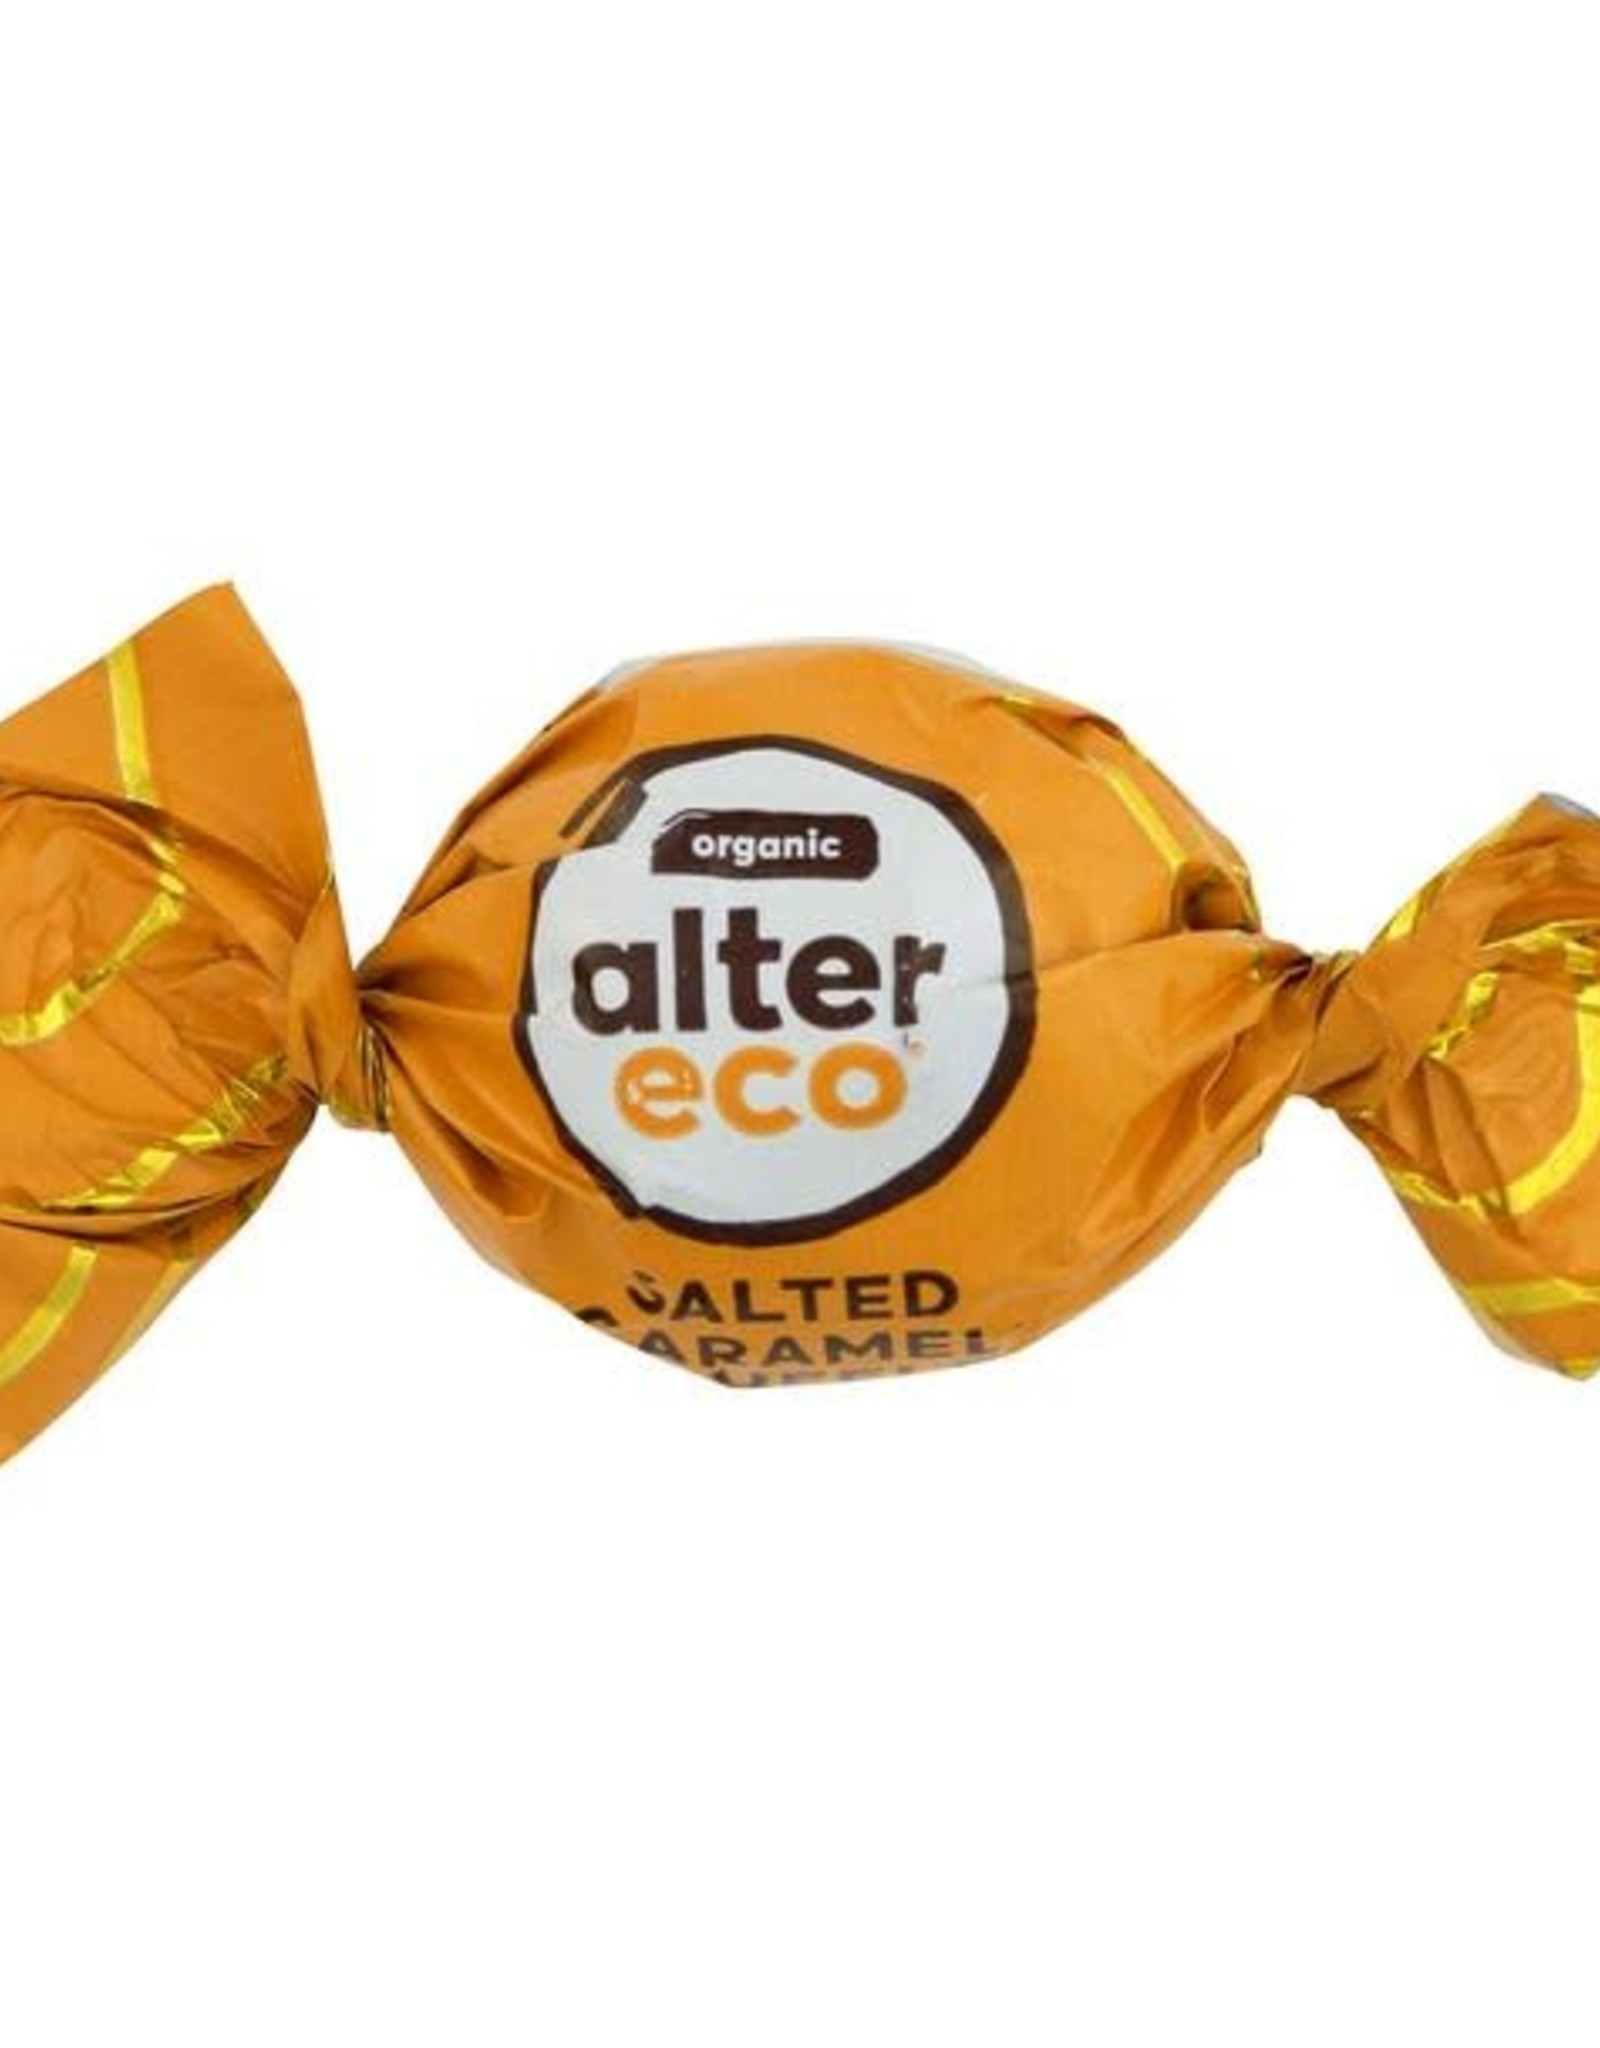 Alter Eco Alter Eco Truffle Salted Caramel single